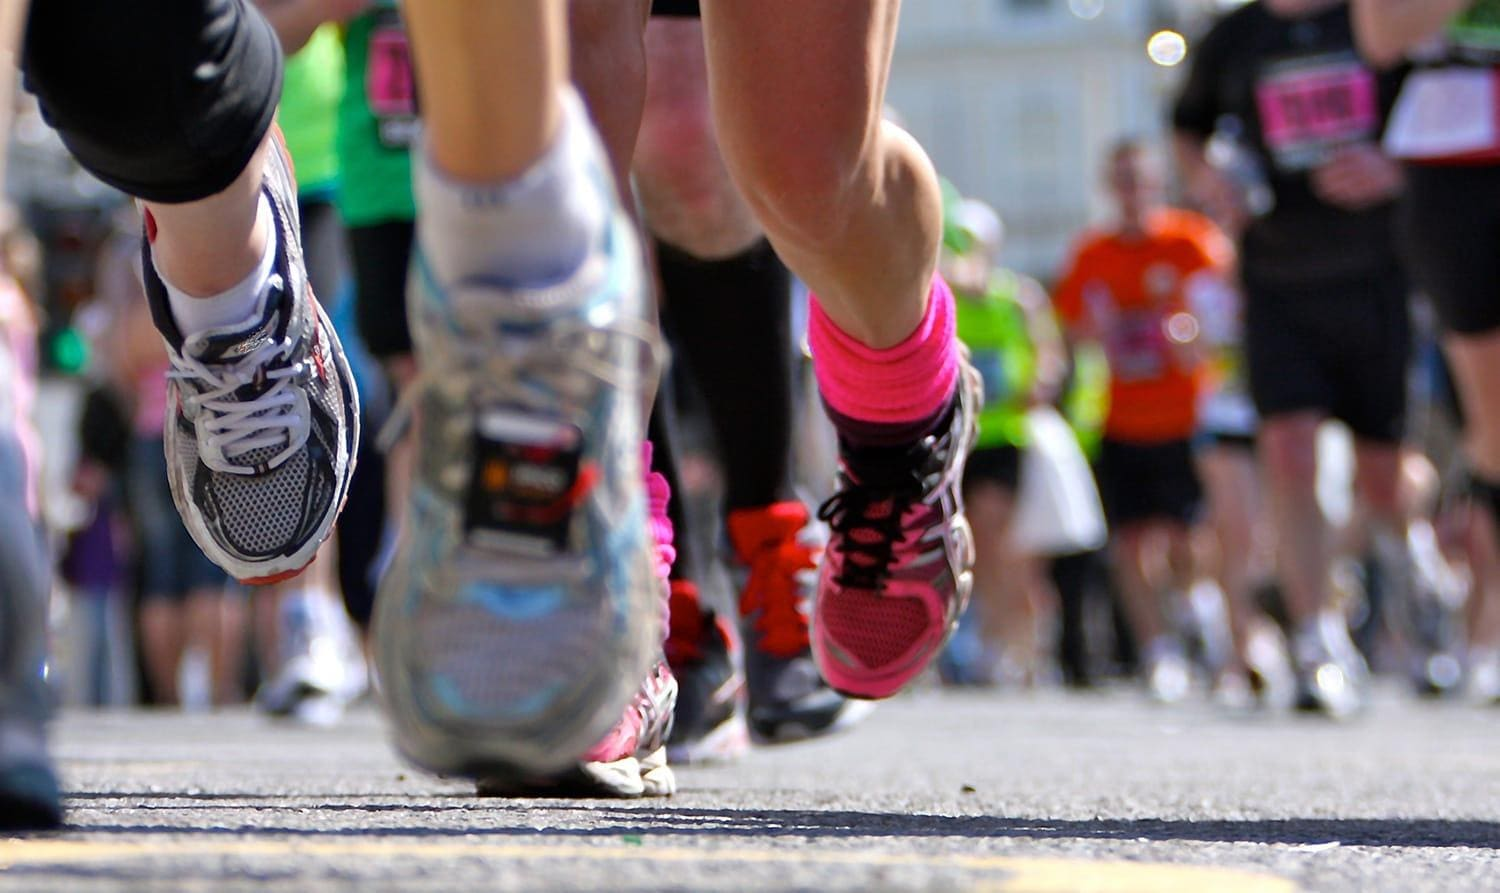 View of runners' feet in a race